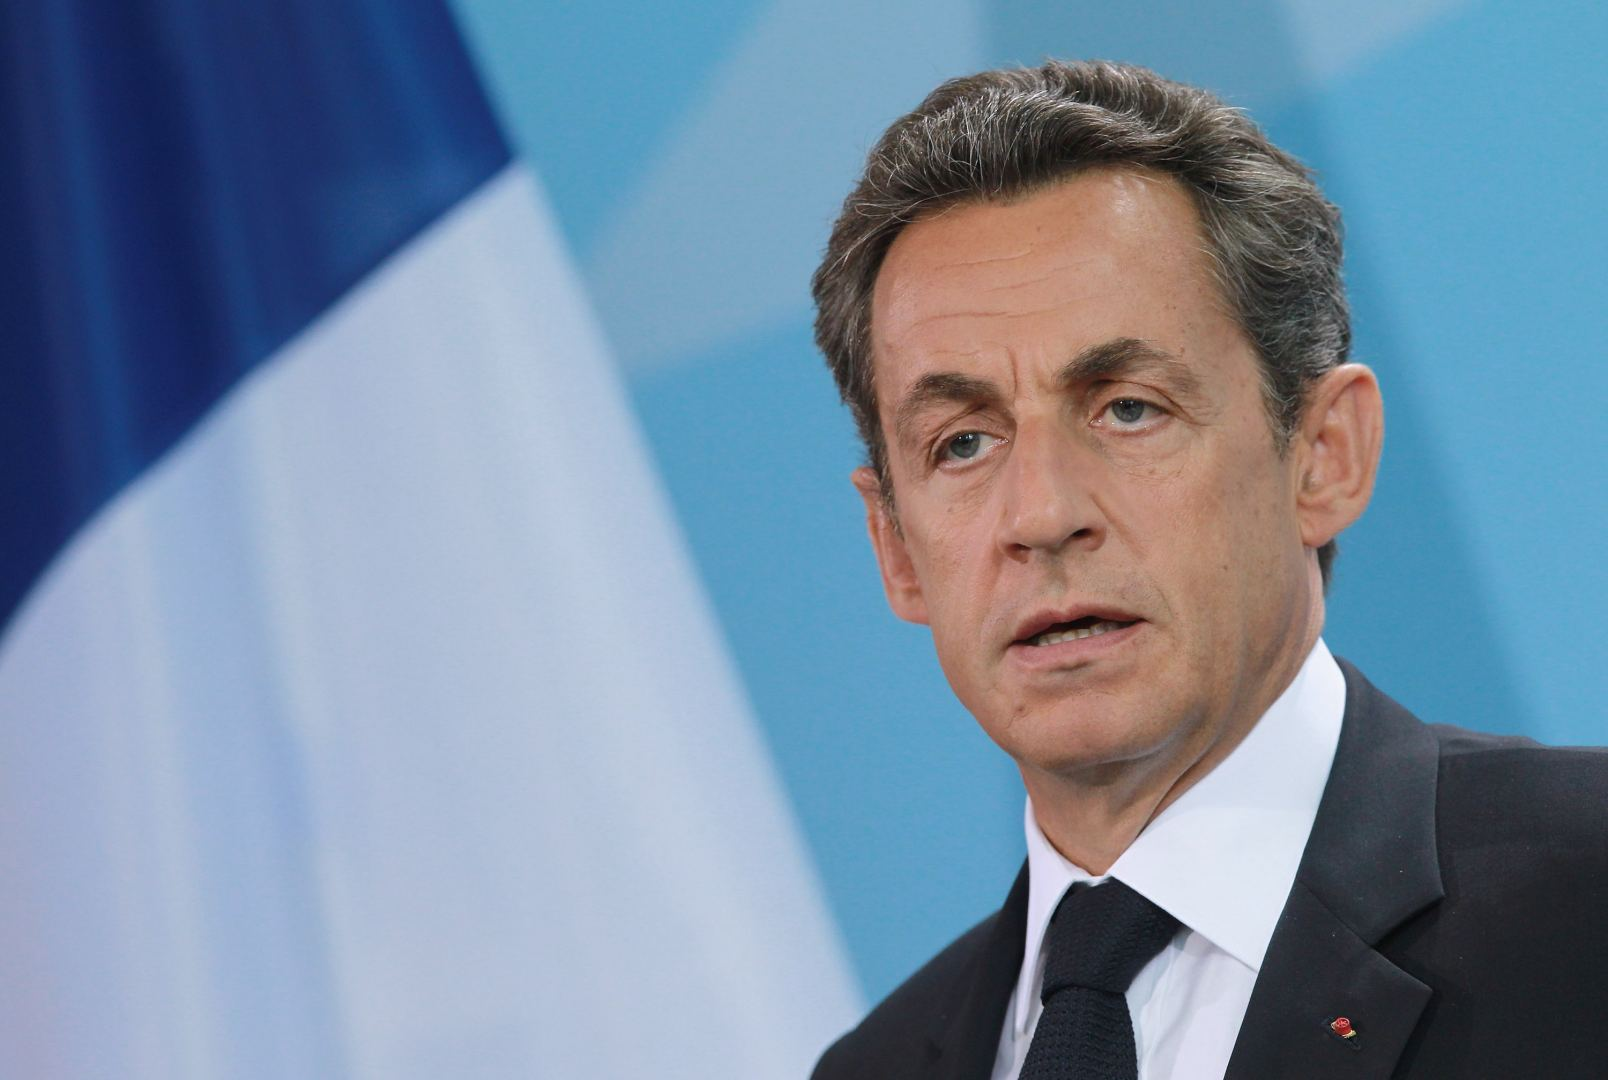 sarkozy - photo #34